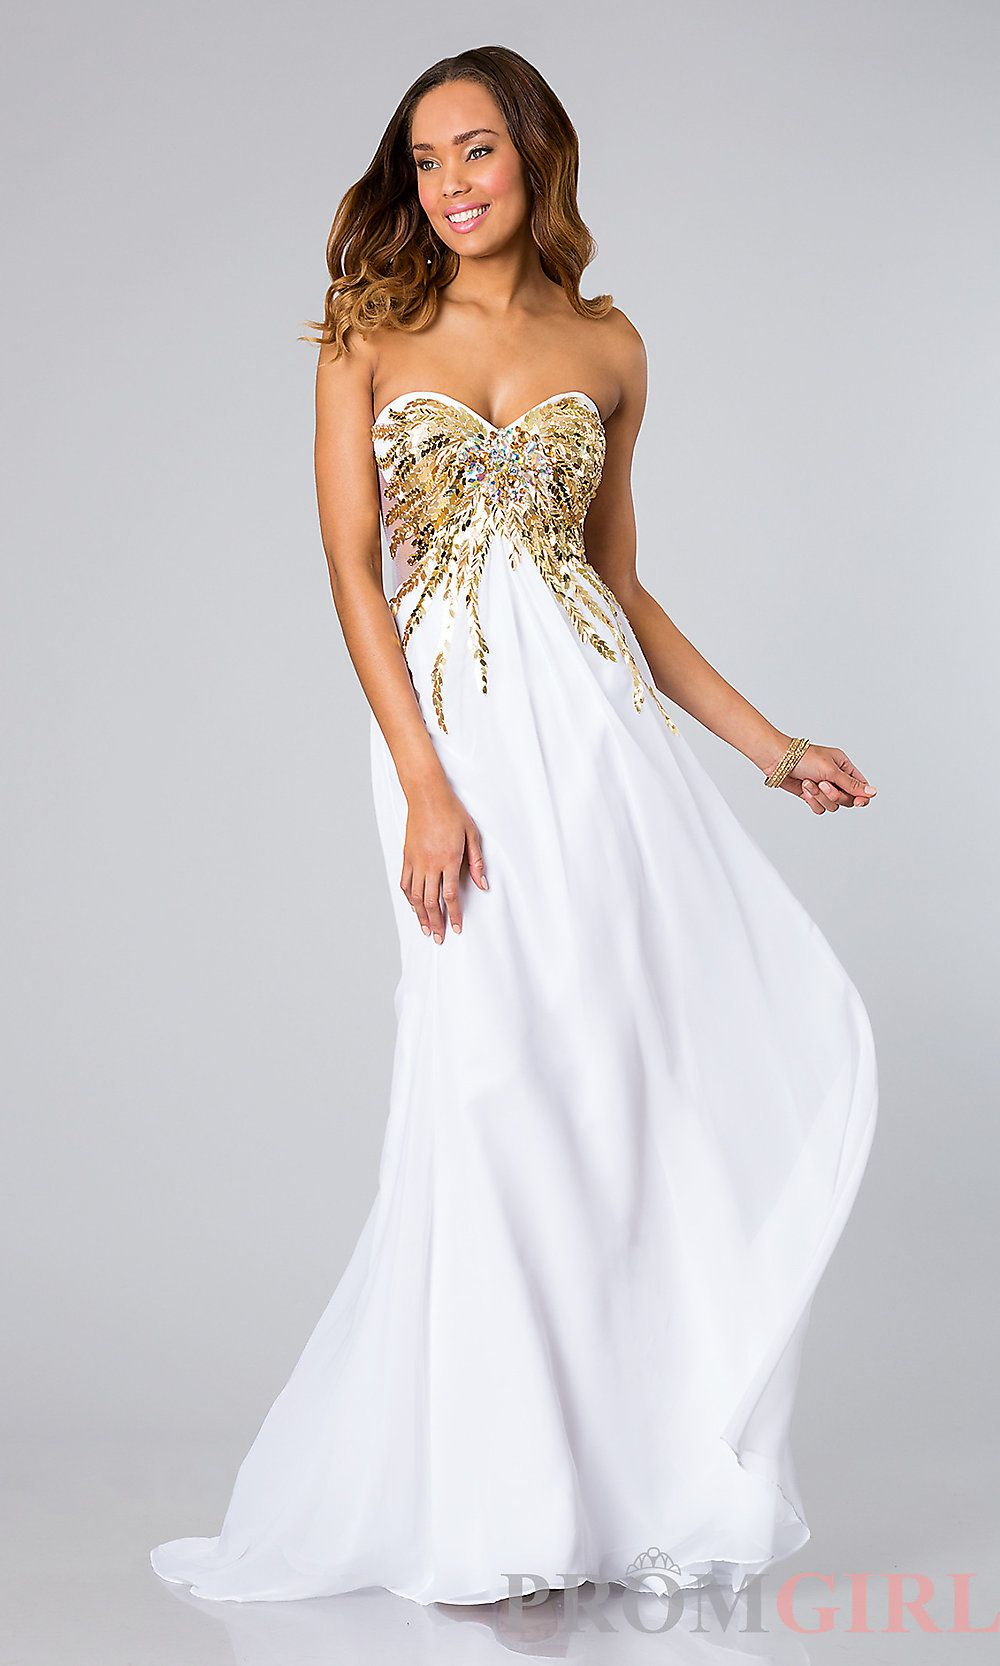 white and gold prom dresses google search prom